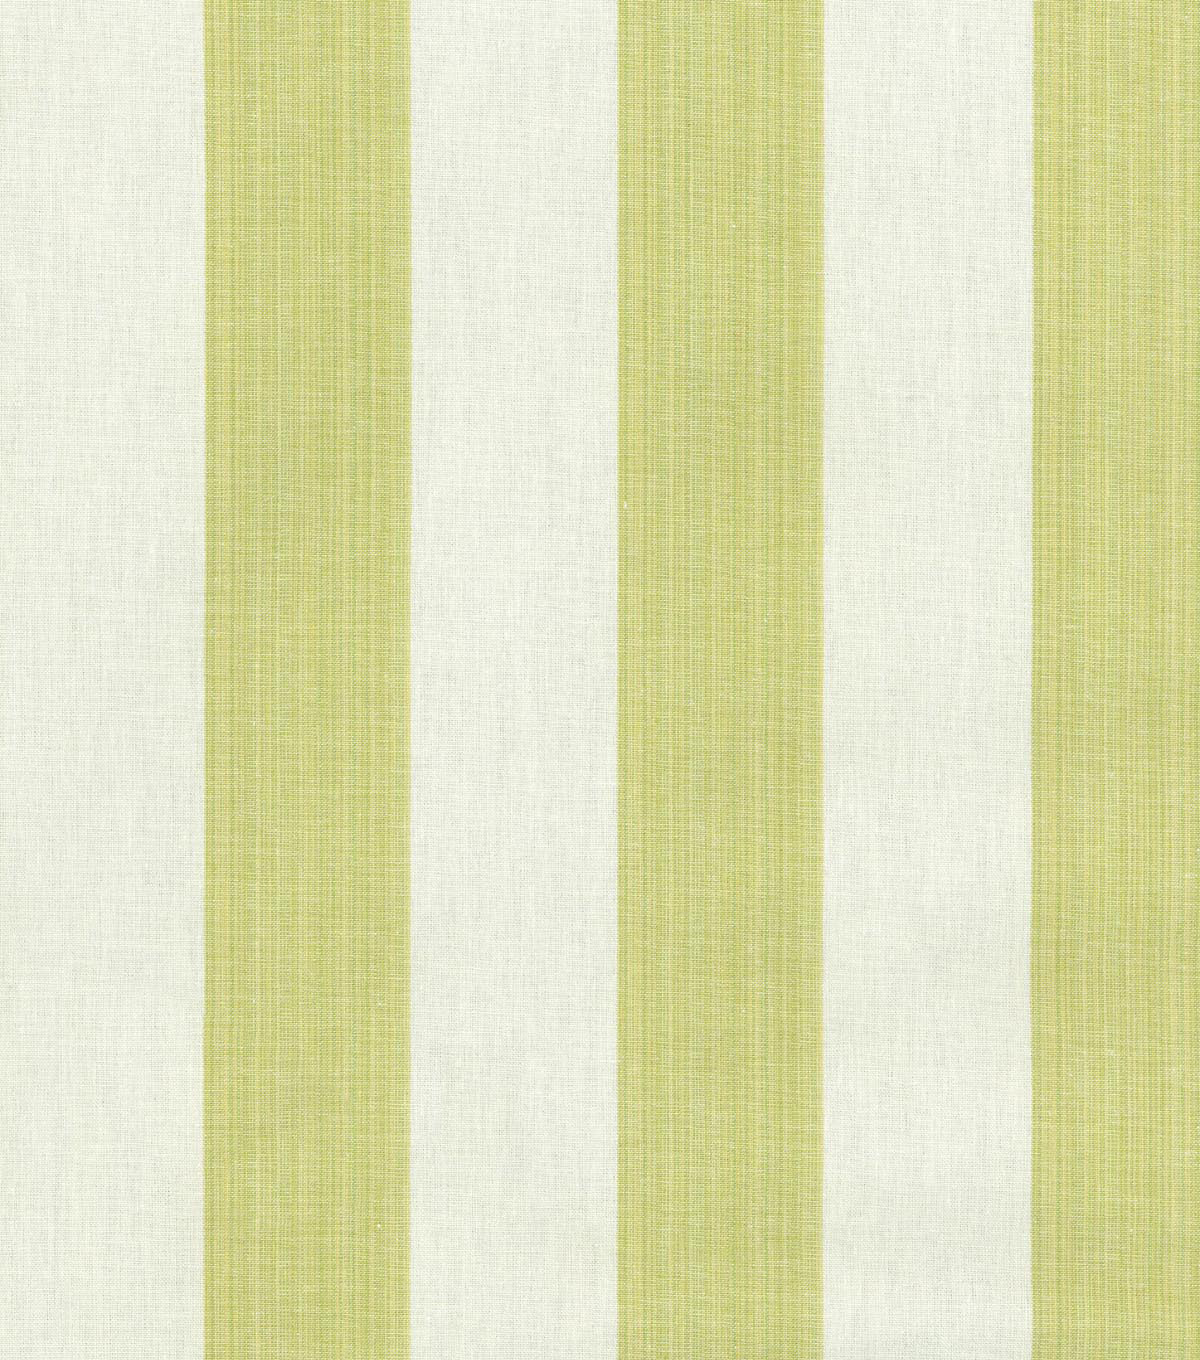 Home Decor 8\u0022x8\u0022 Swatch Fabric-Williamsburg Stratford Stripe Spring